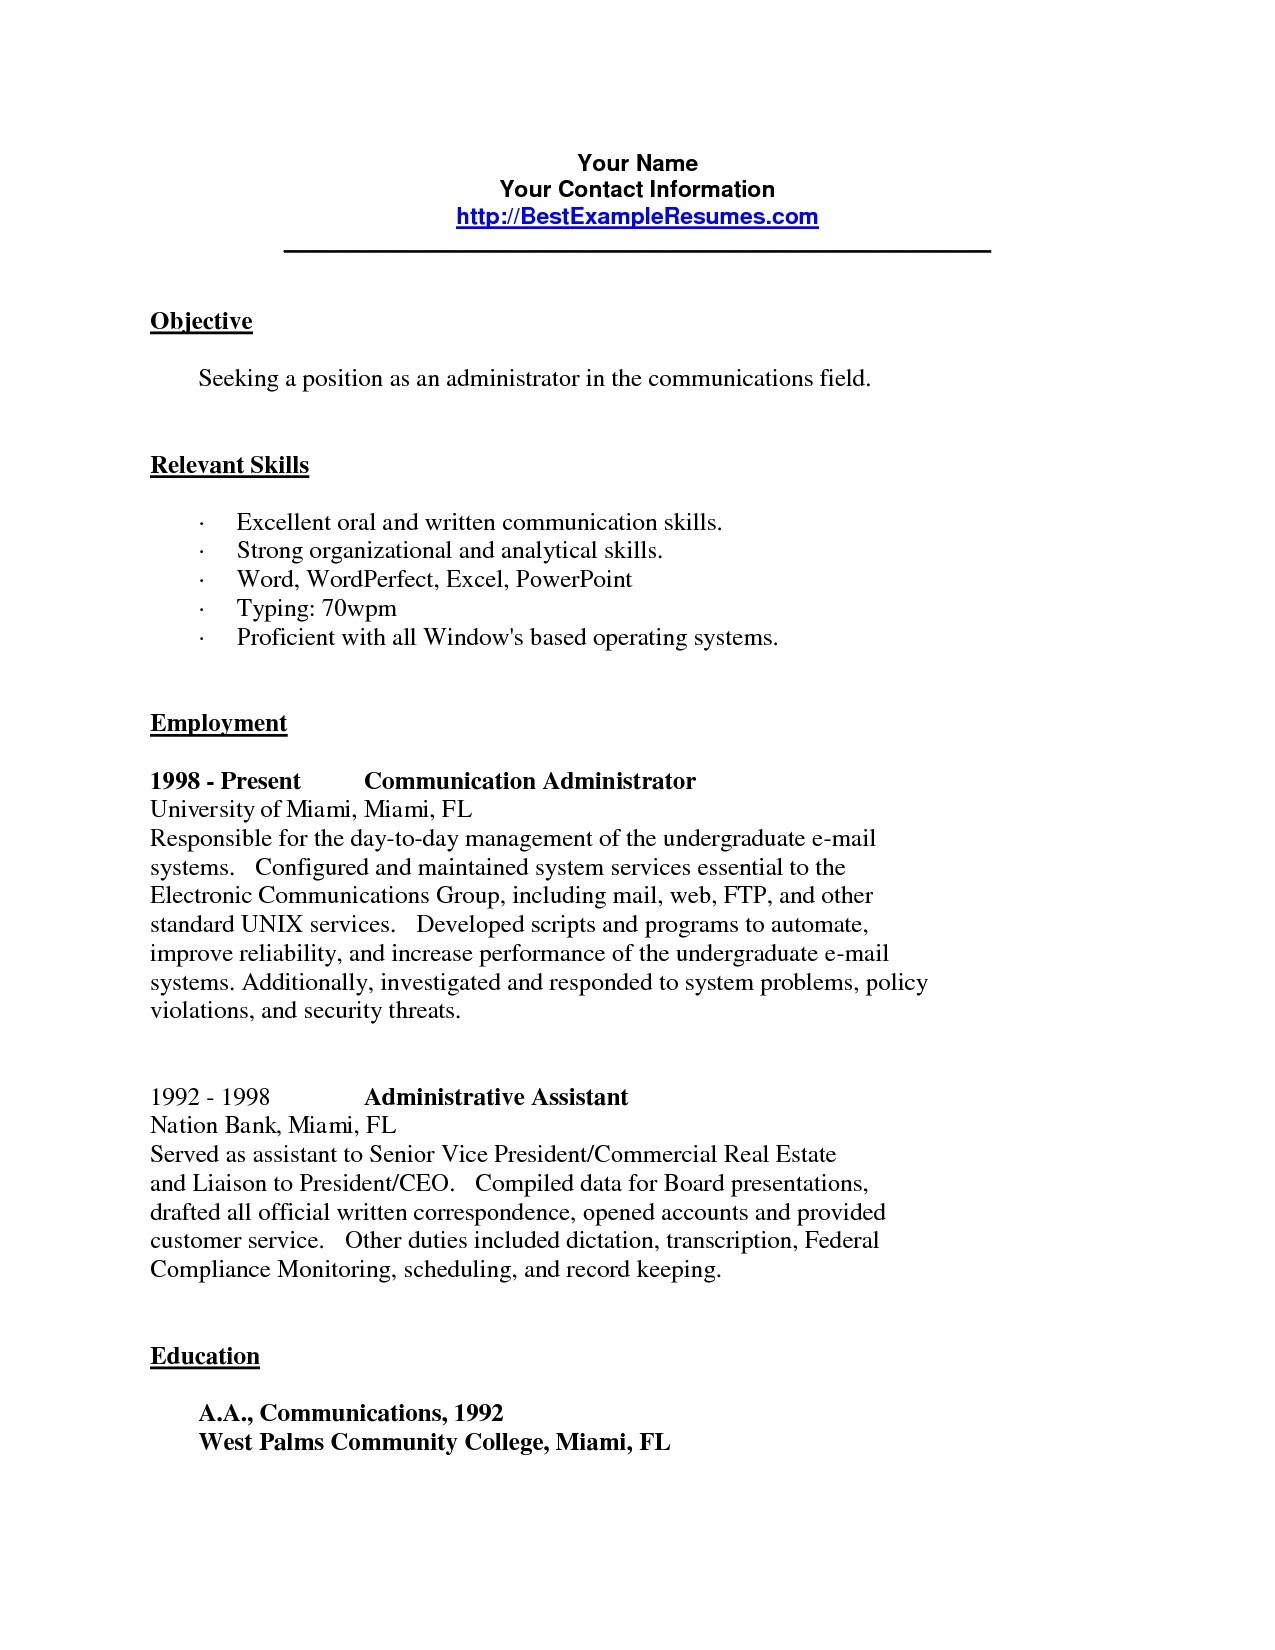 Strong Skills for Resume - Skills for Resumes New Inspirational Skills for A Resume Fishing